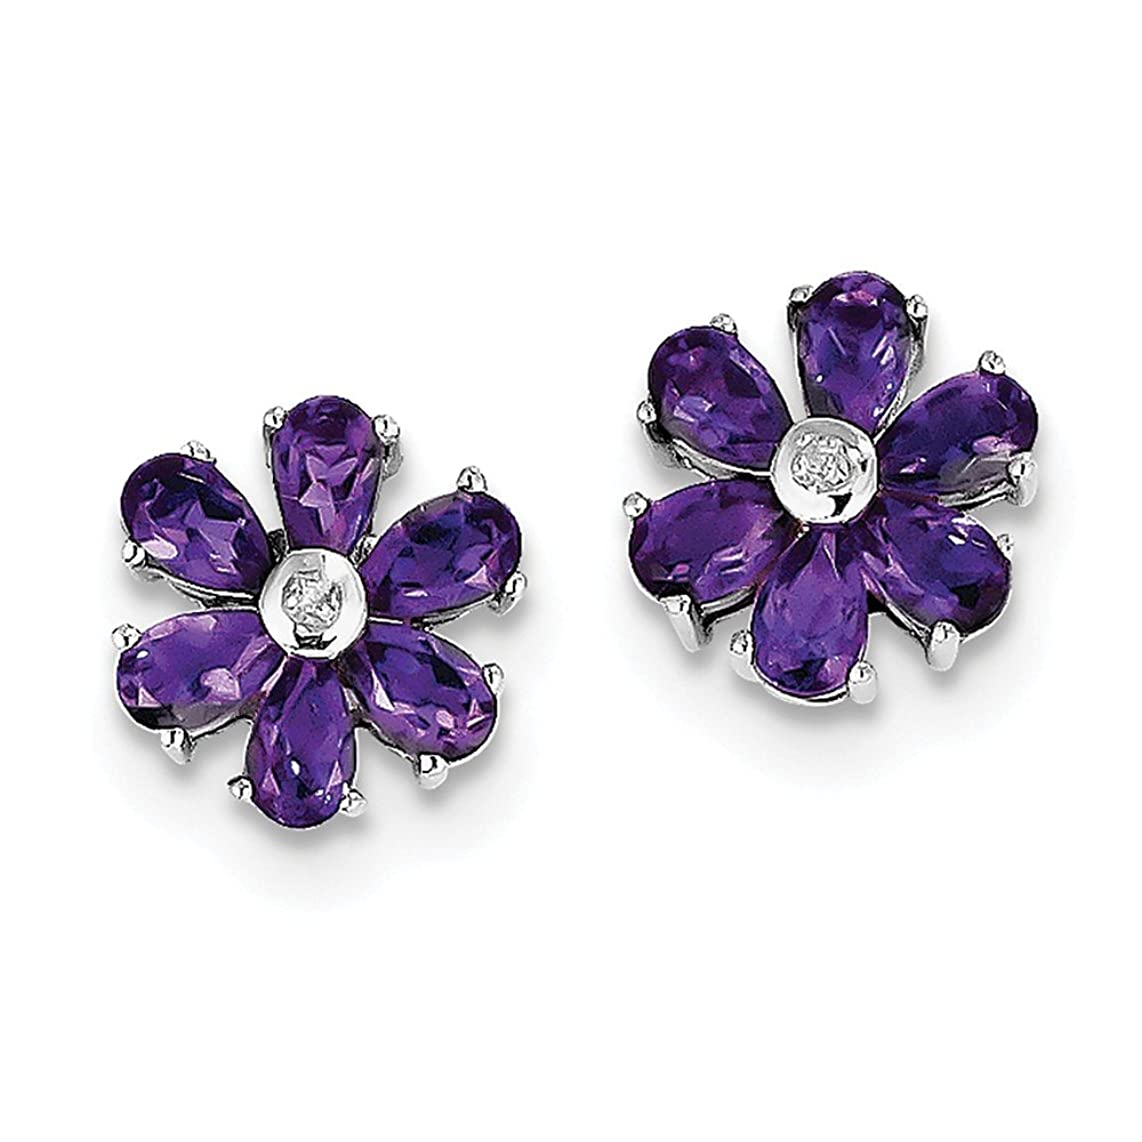 Best Birthday Gift Sterling Silver Rhodium Plated Diamond and Amethyst Post Earrings